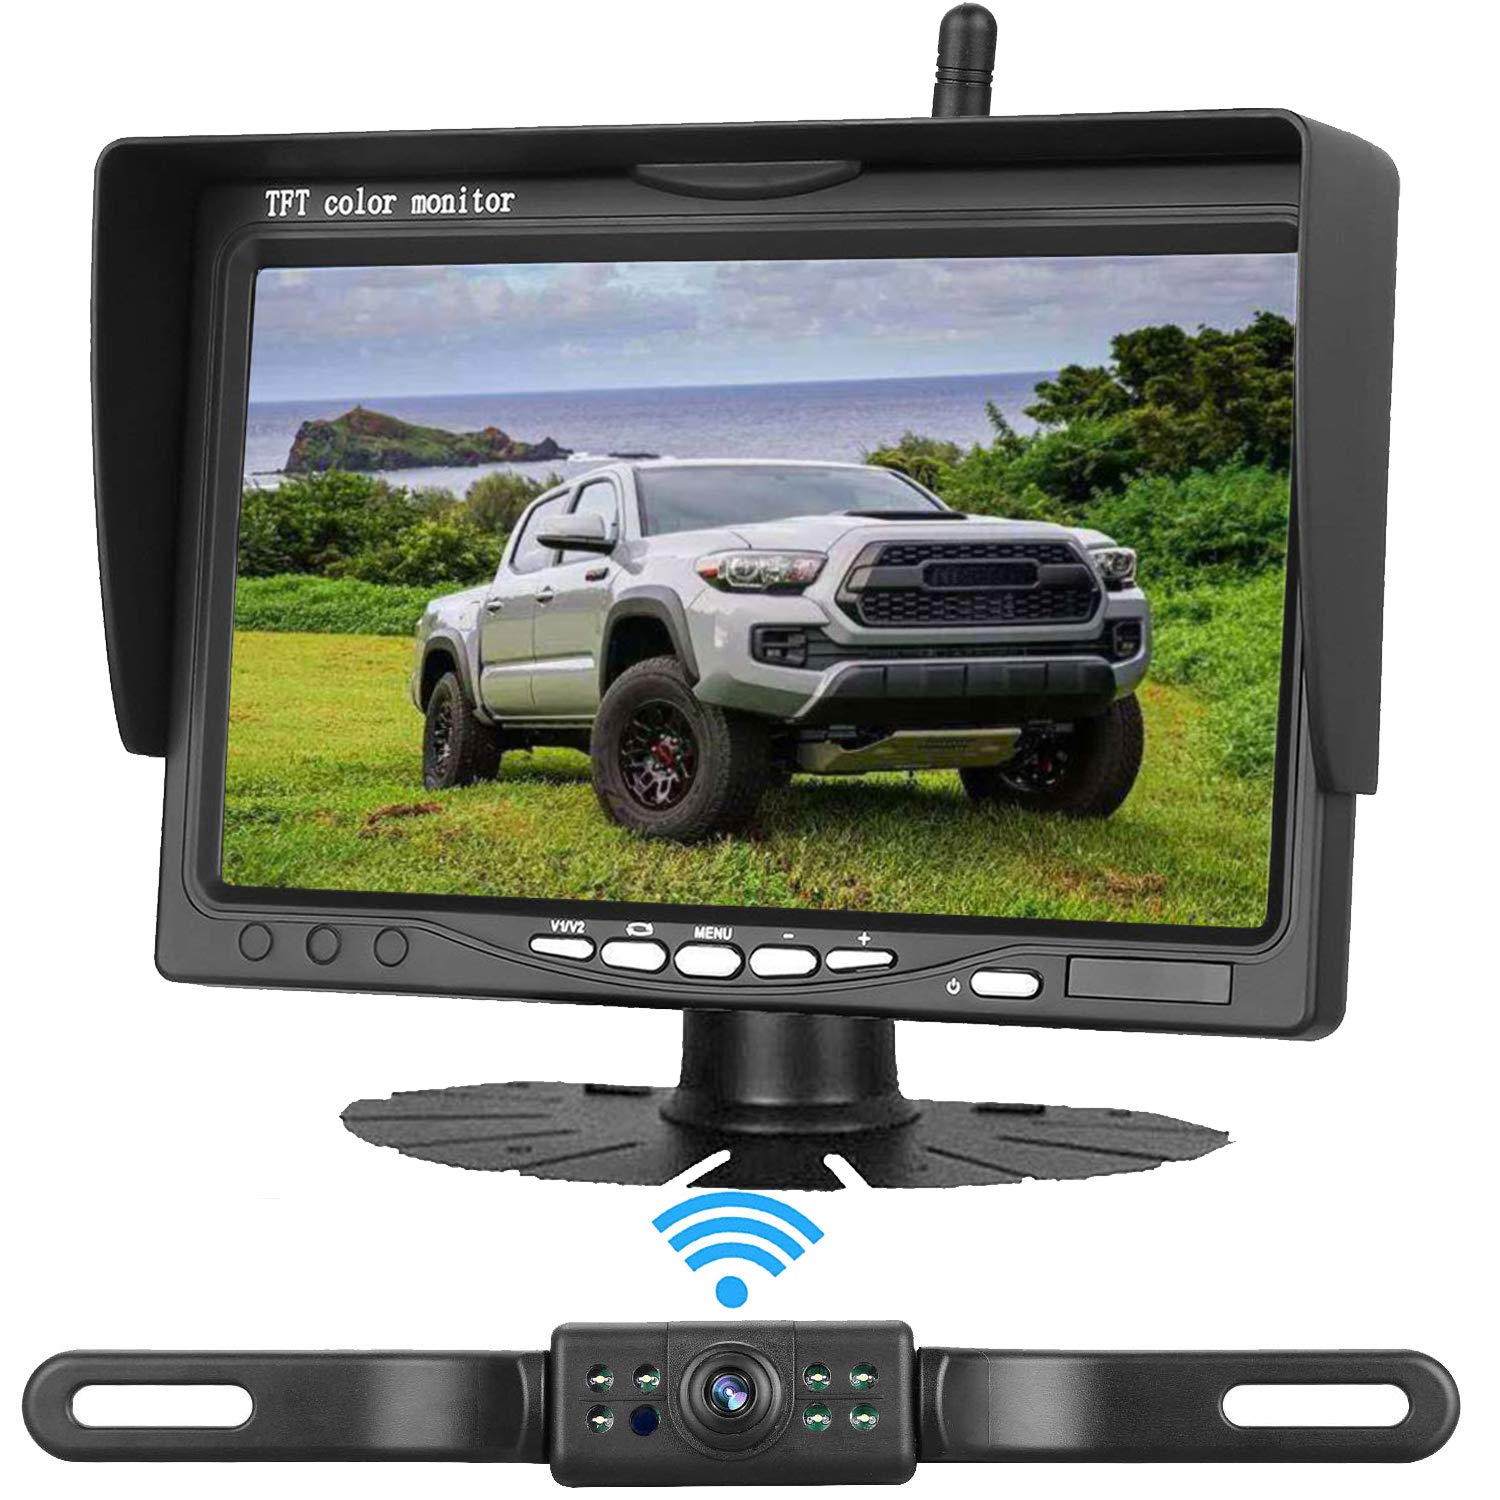 Emmako Backup Camera and 4.3 Mirror Monitor Kit For Car//RV//Pickup Truck//Trailer//Van IP68 Waterproof Night Vision Rear View System Optional Reversing//Driving Use With Guide Lines